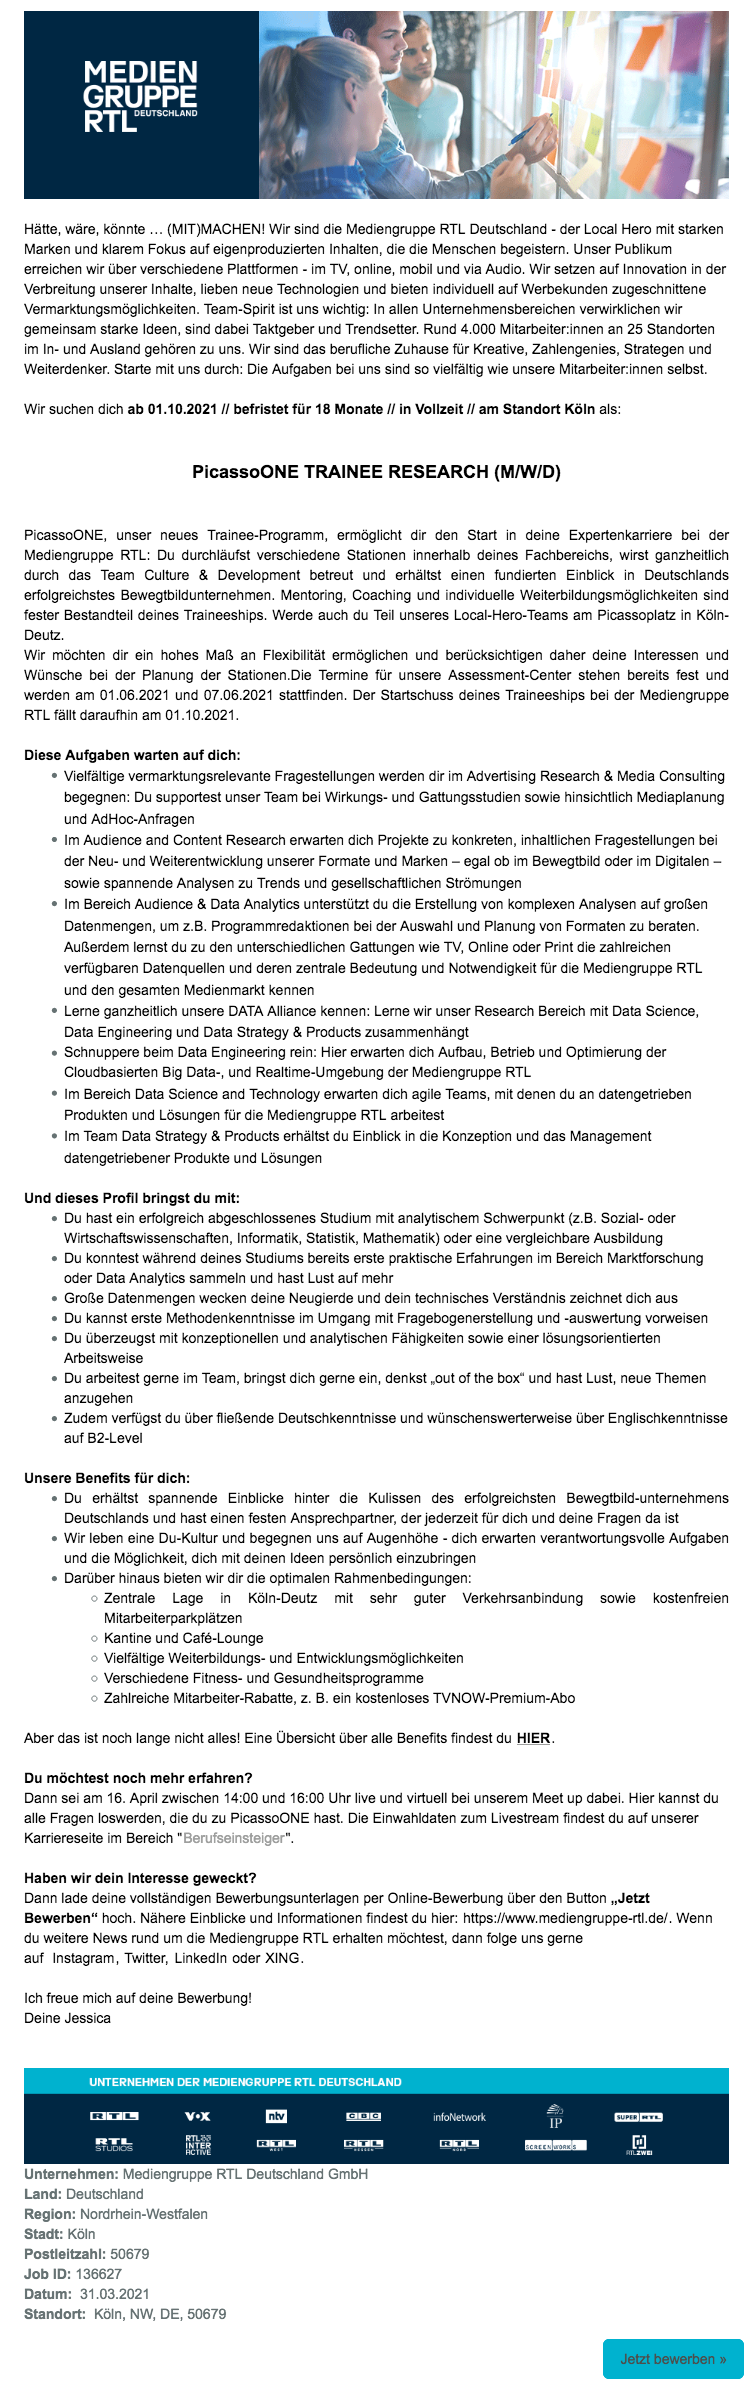 PicassoONE Trainee Research (m/w/d)